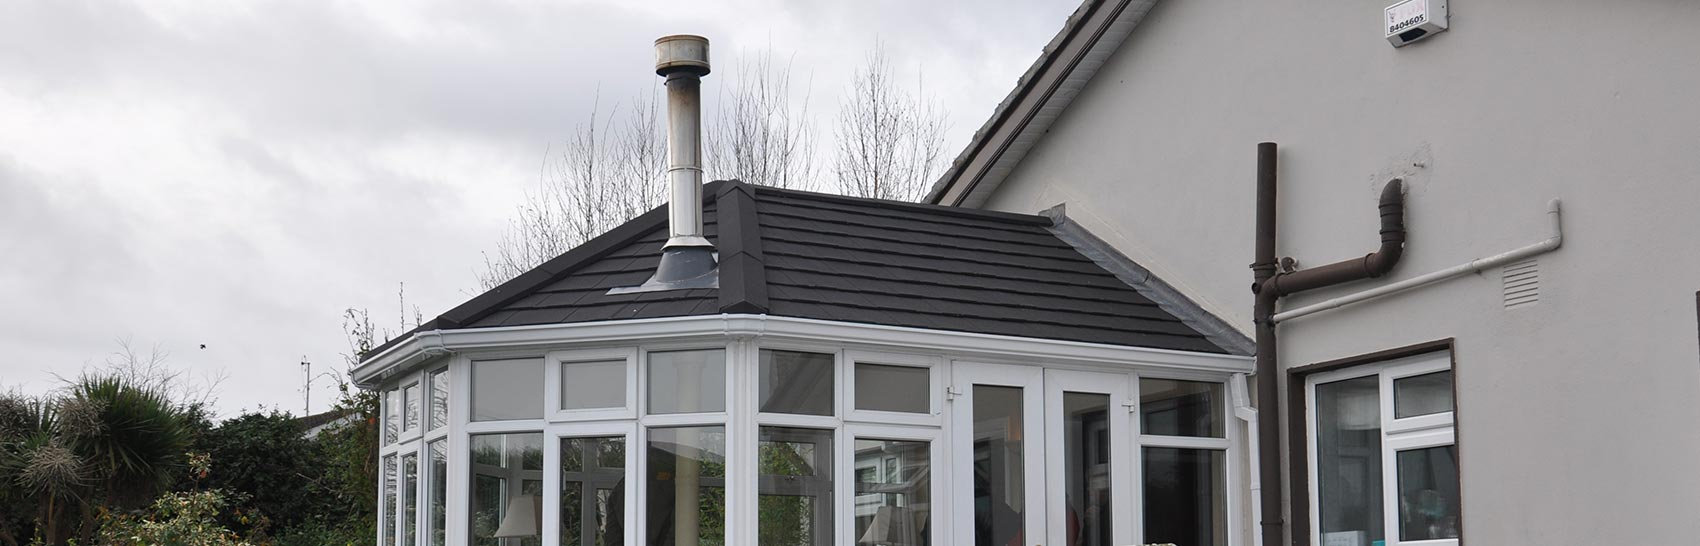 how to draw a tiled roof